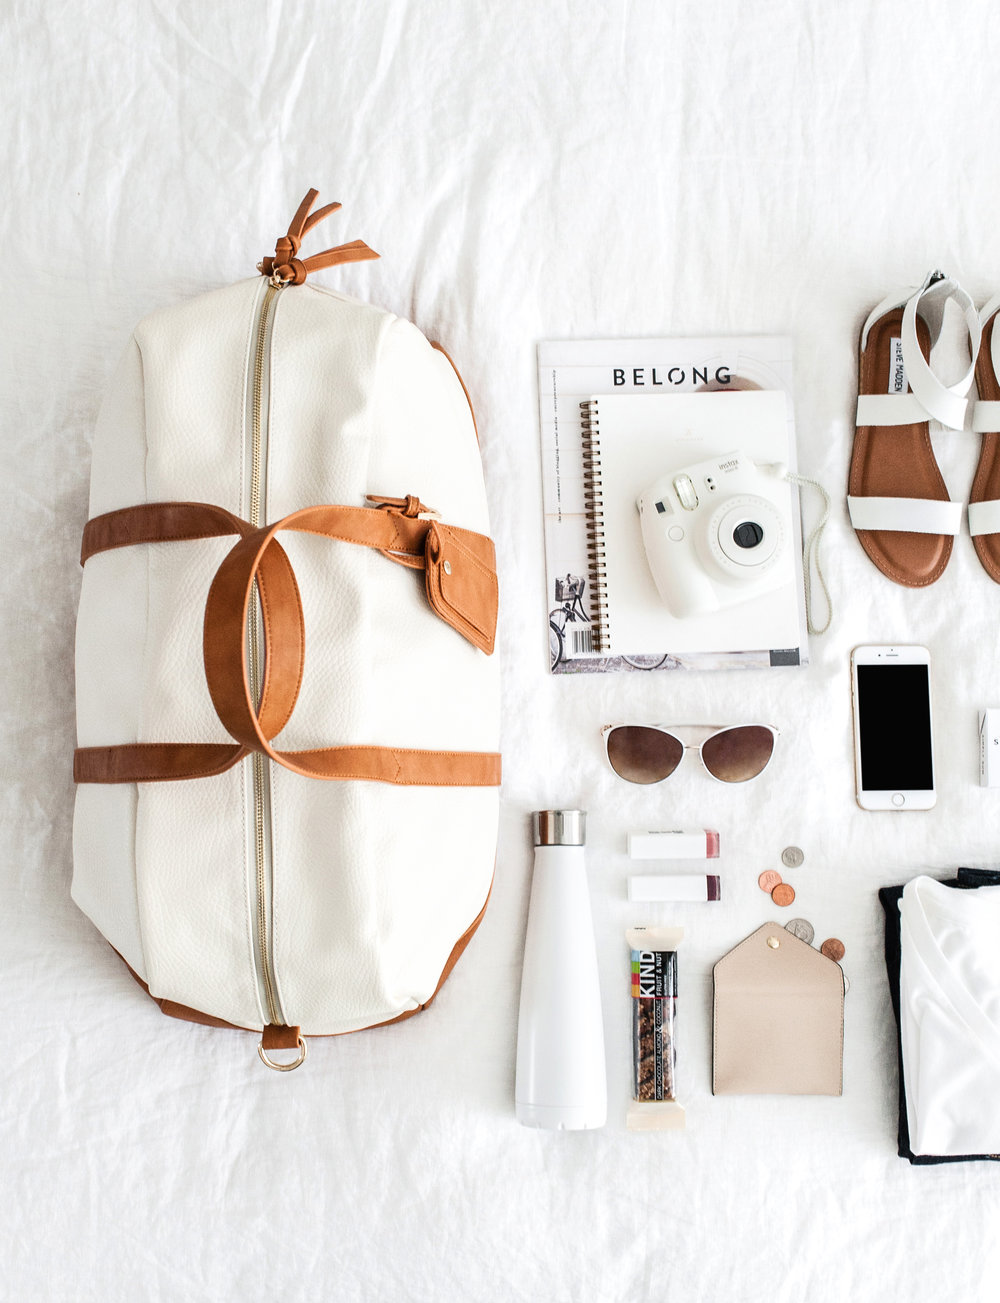 How to Pack Light & Travel Well - Free E-Course